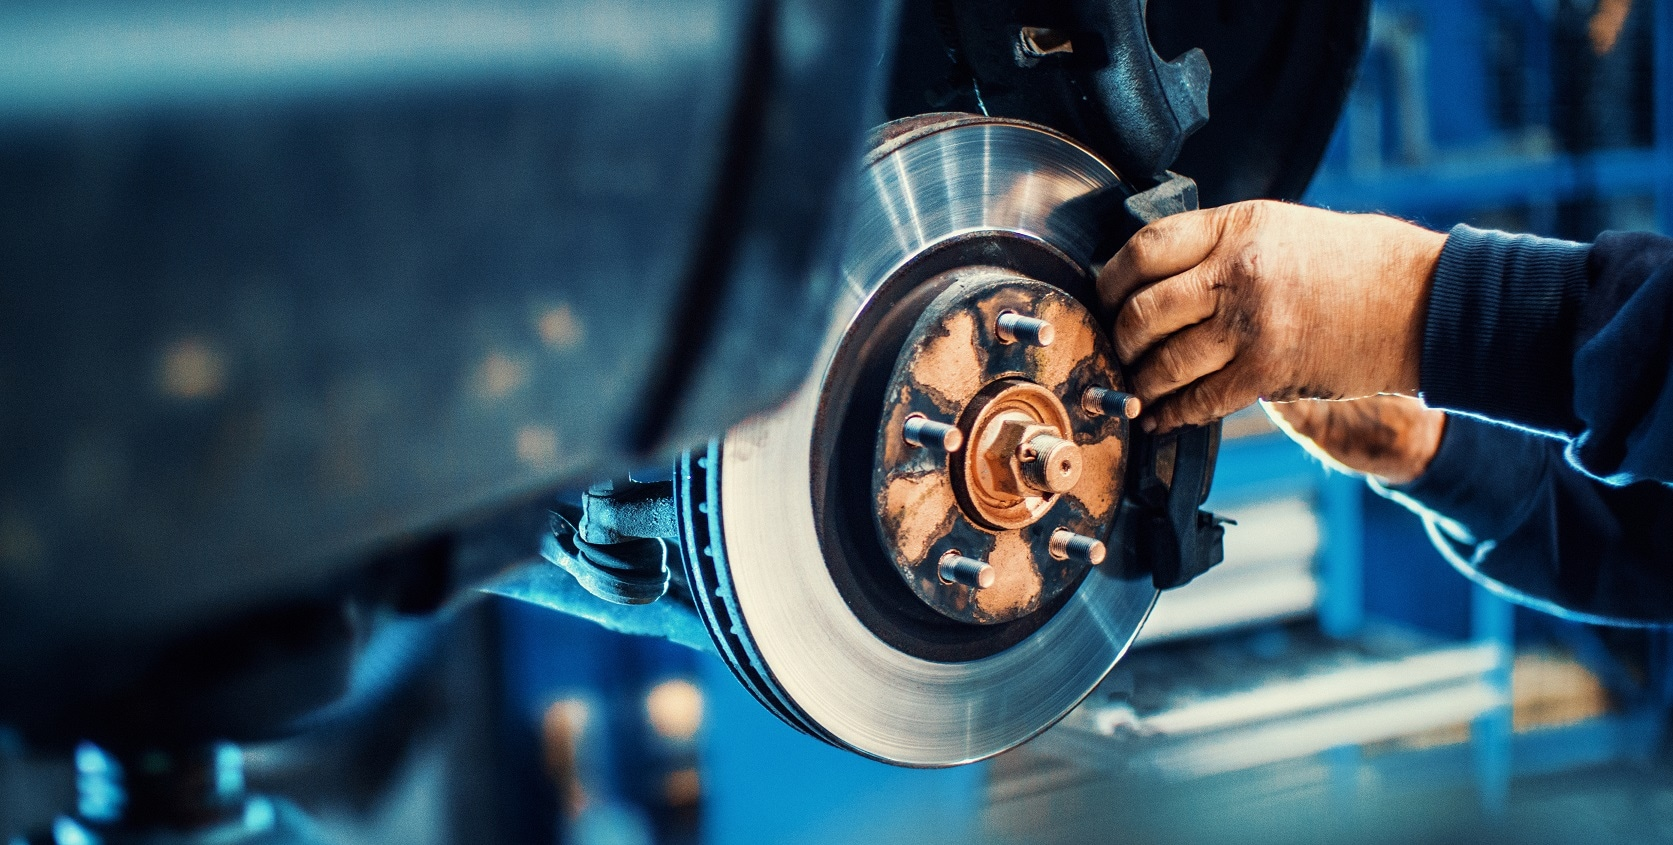 Brake Repair and Service in Lisle, IL